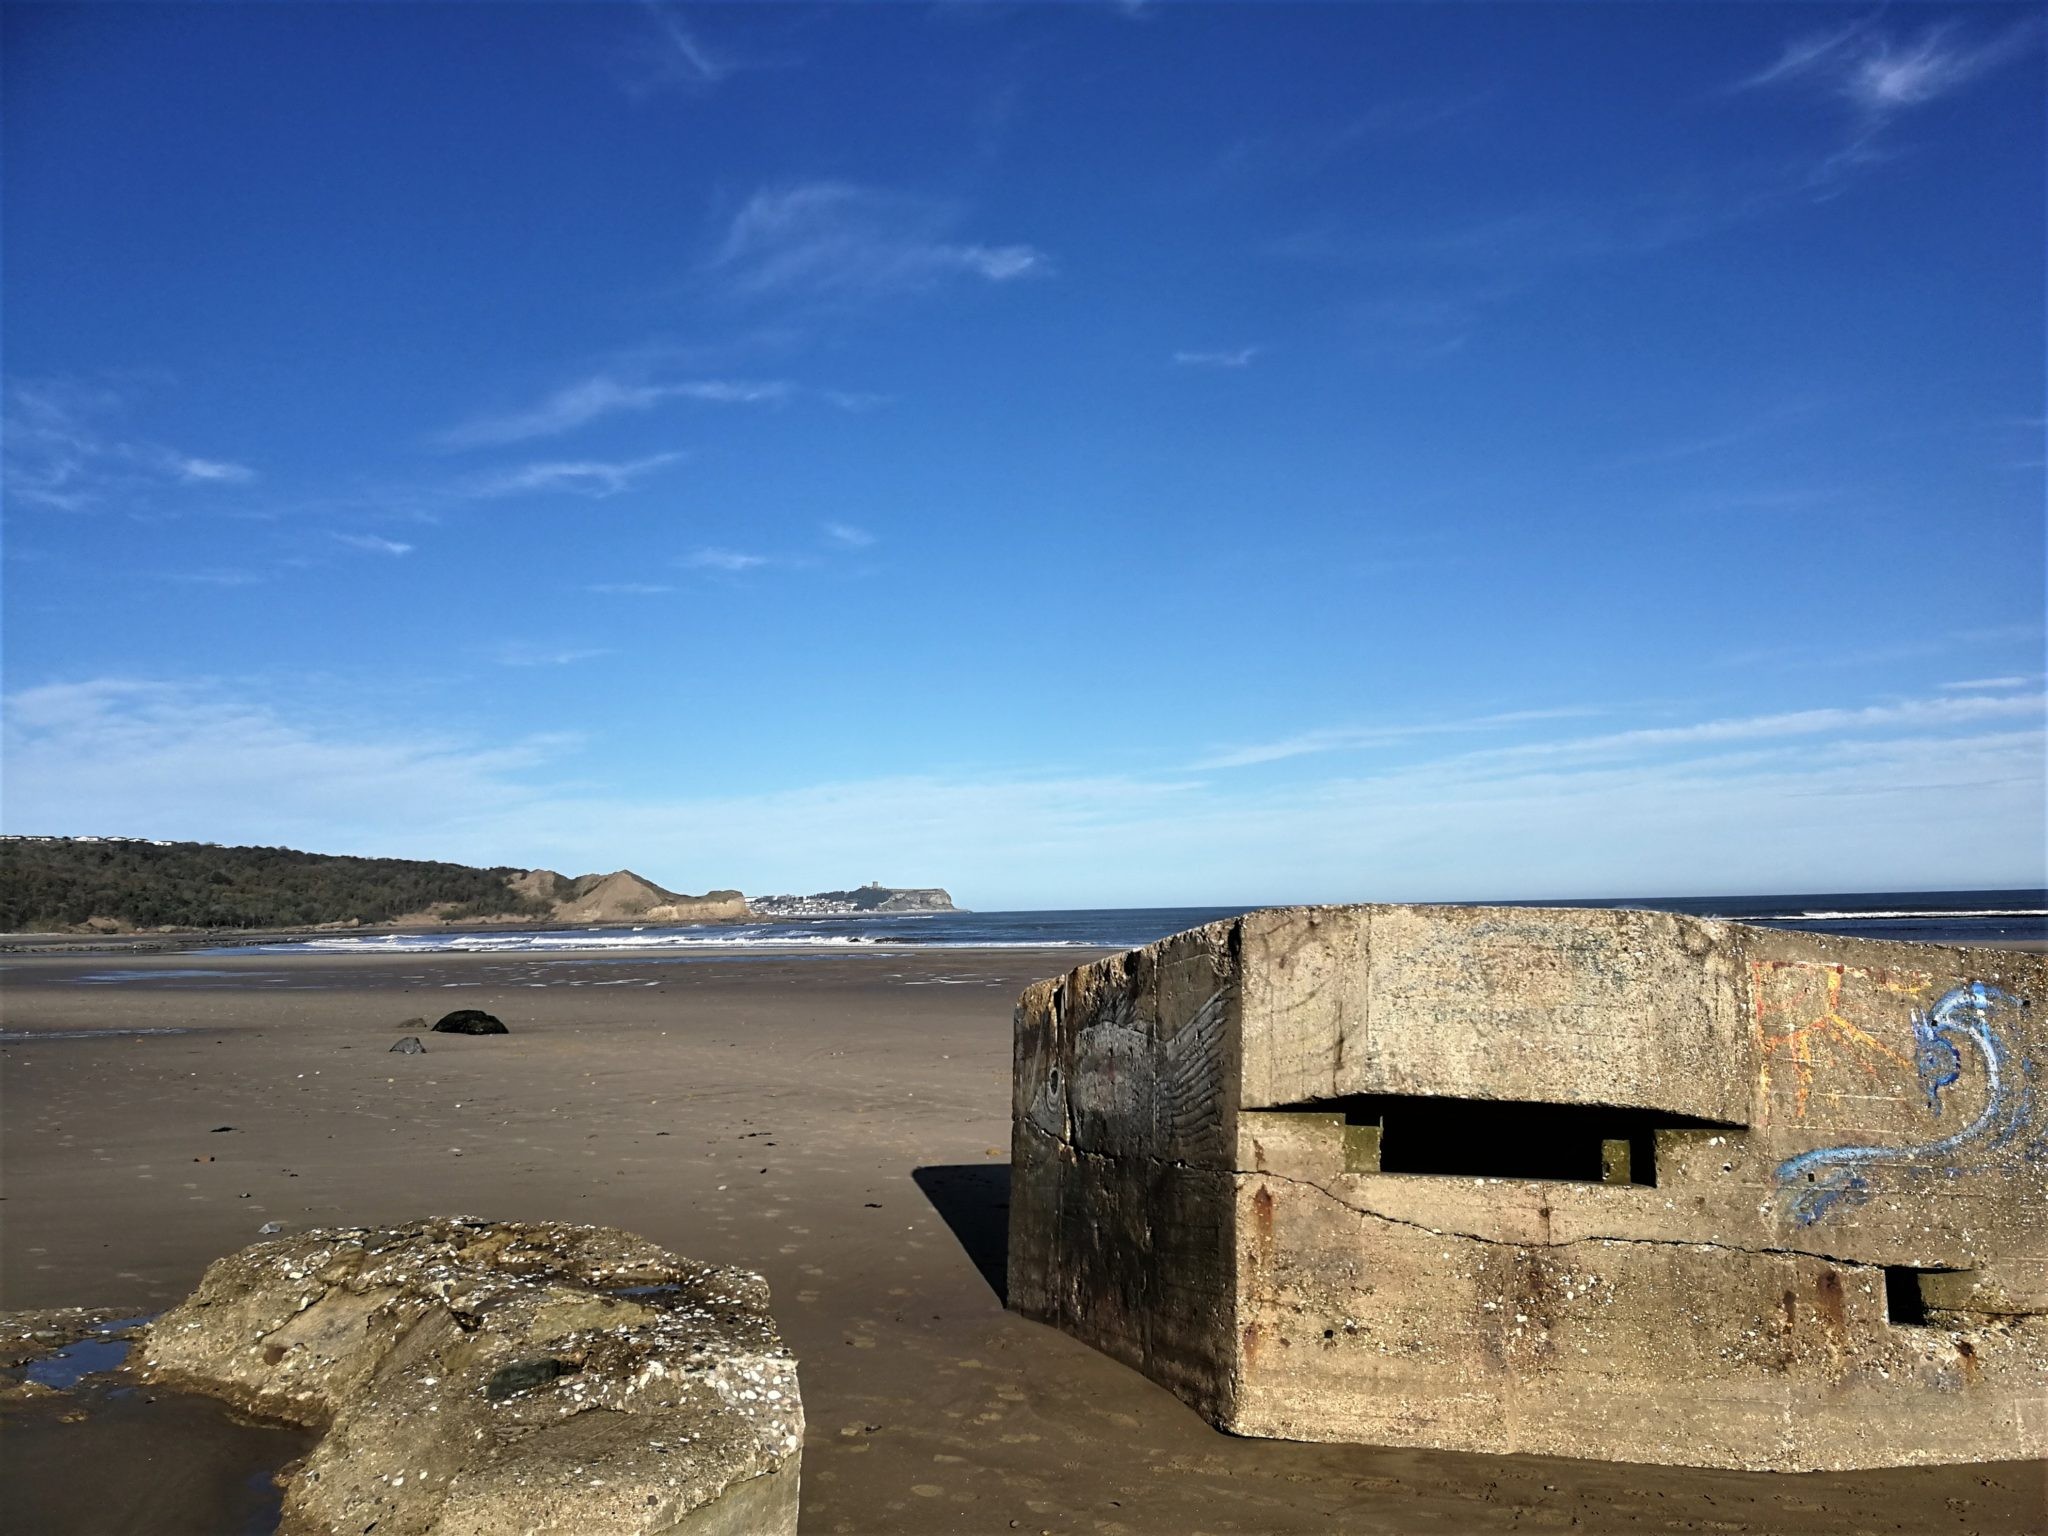 Coxwold by the Sea? The perfect holiday location!